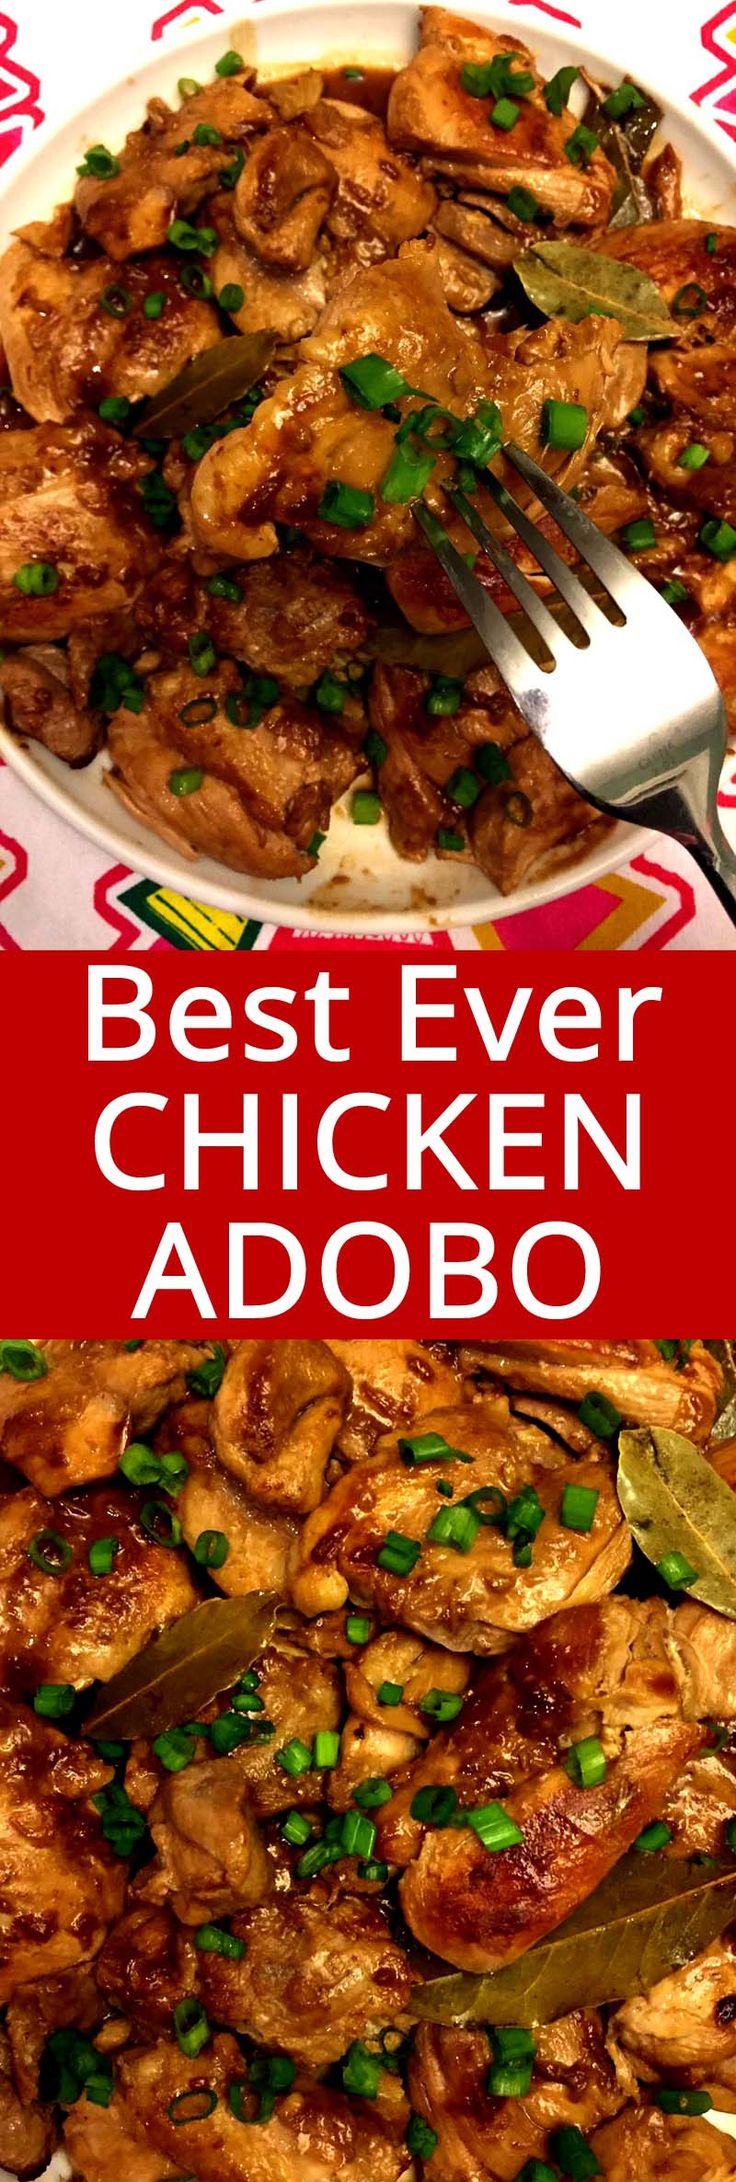 I love chicken adobo! This is my favorite Filipino recipe and it tastes totally authentic! This is the only chicken adobo recipe you'll ever need!